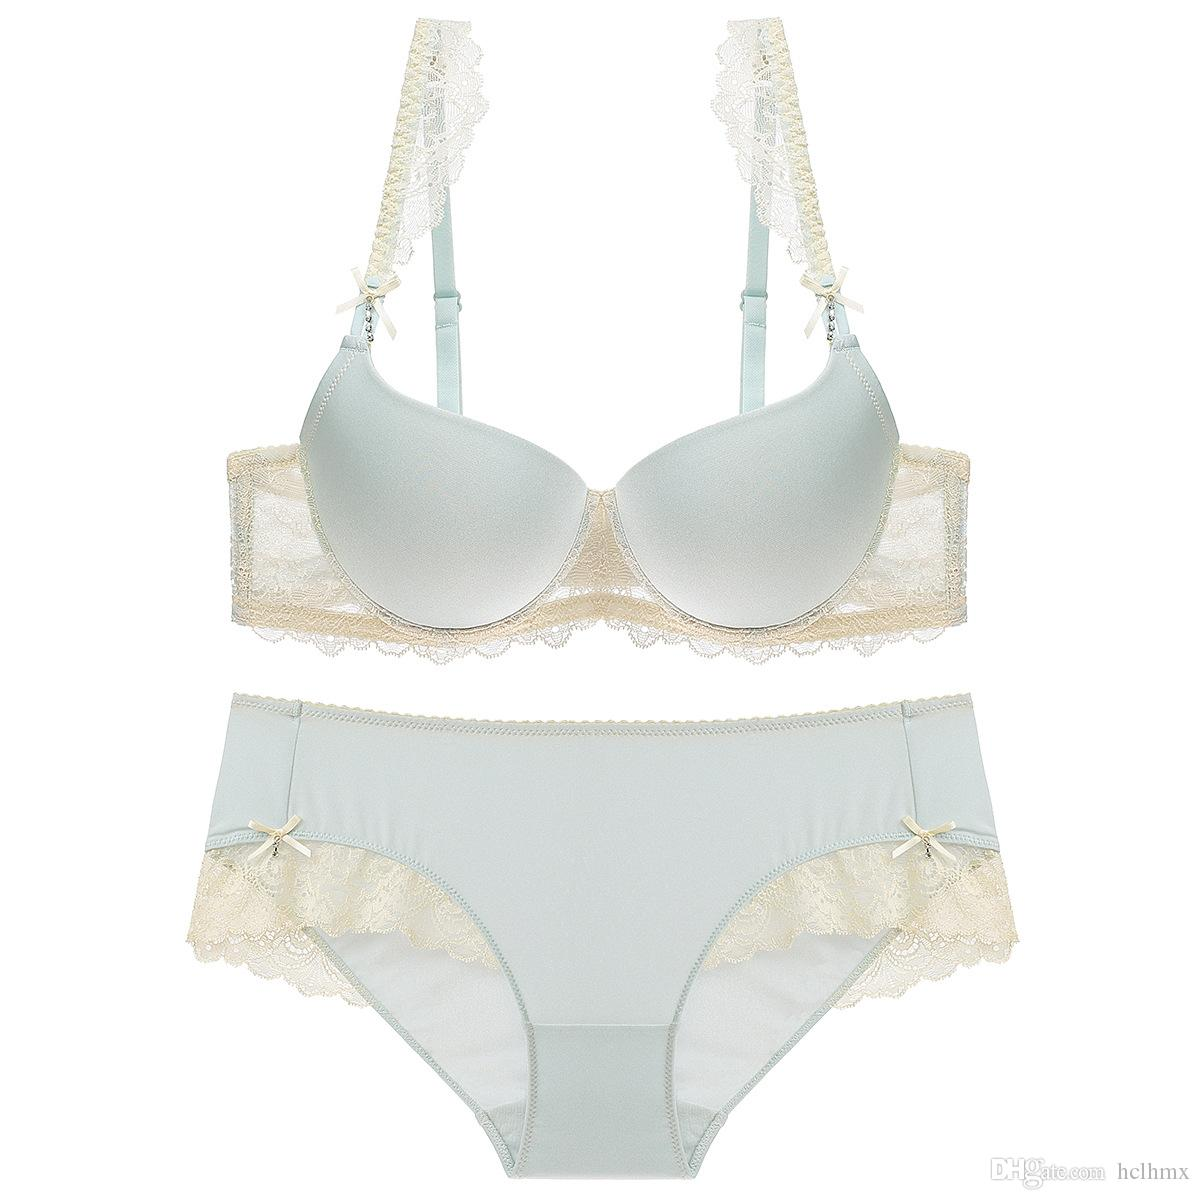 c4b788ebd5dd 2019 Sweet Sexy Lace Soft Bra And Panty Lingerie Set New Design Thin Under  Thick Smooth Cup Lace Wing Underwear Sheer Lingerie From Hclhmx, $12.19 |  DHgate.